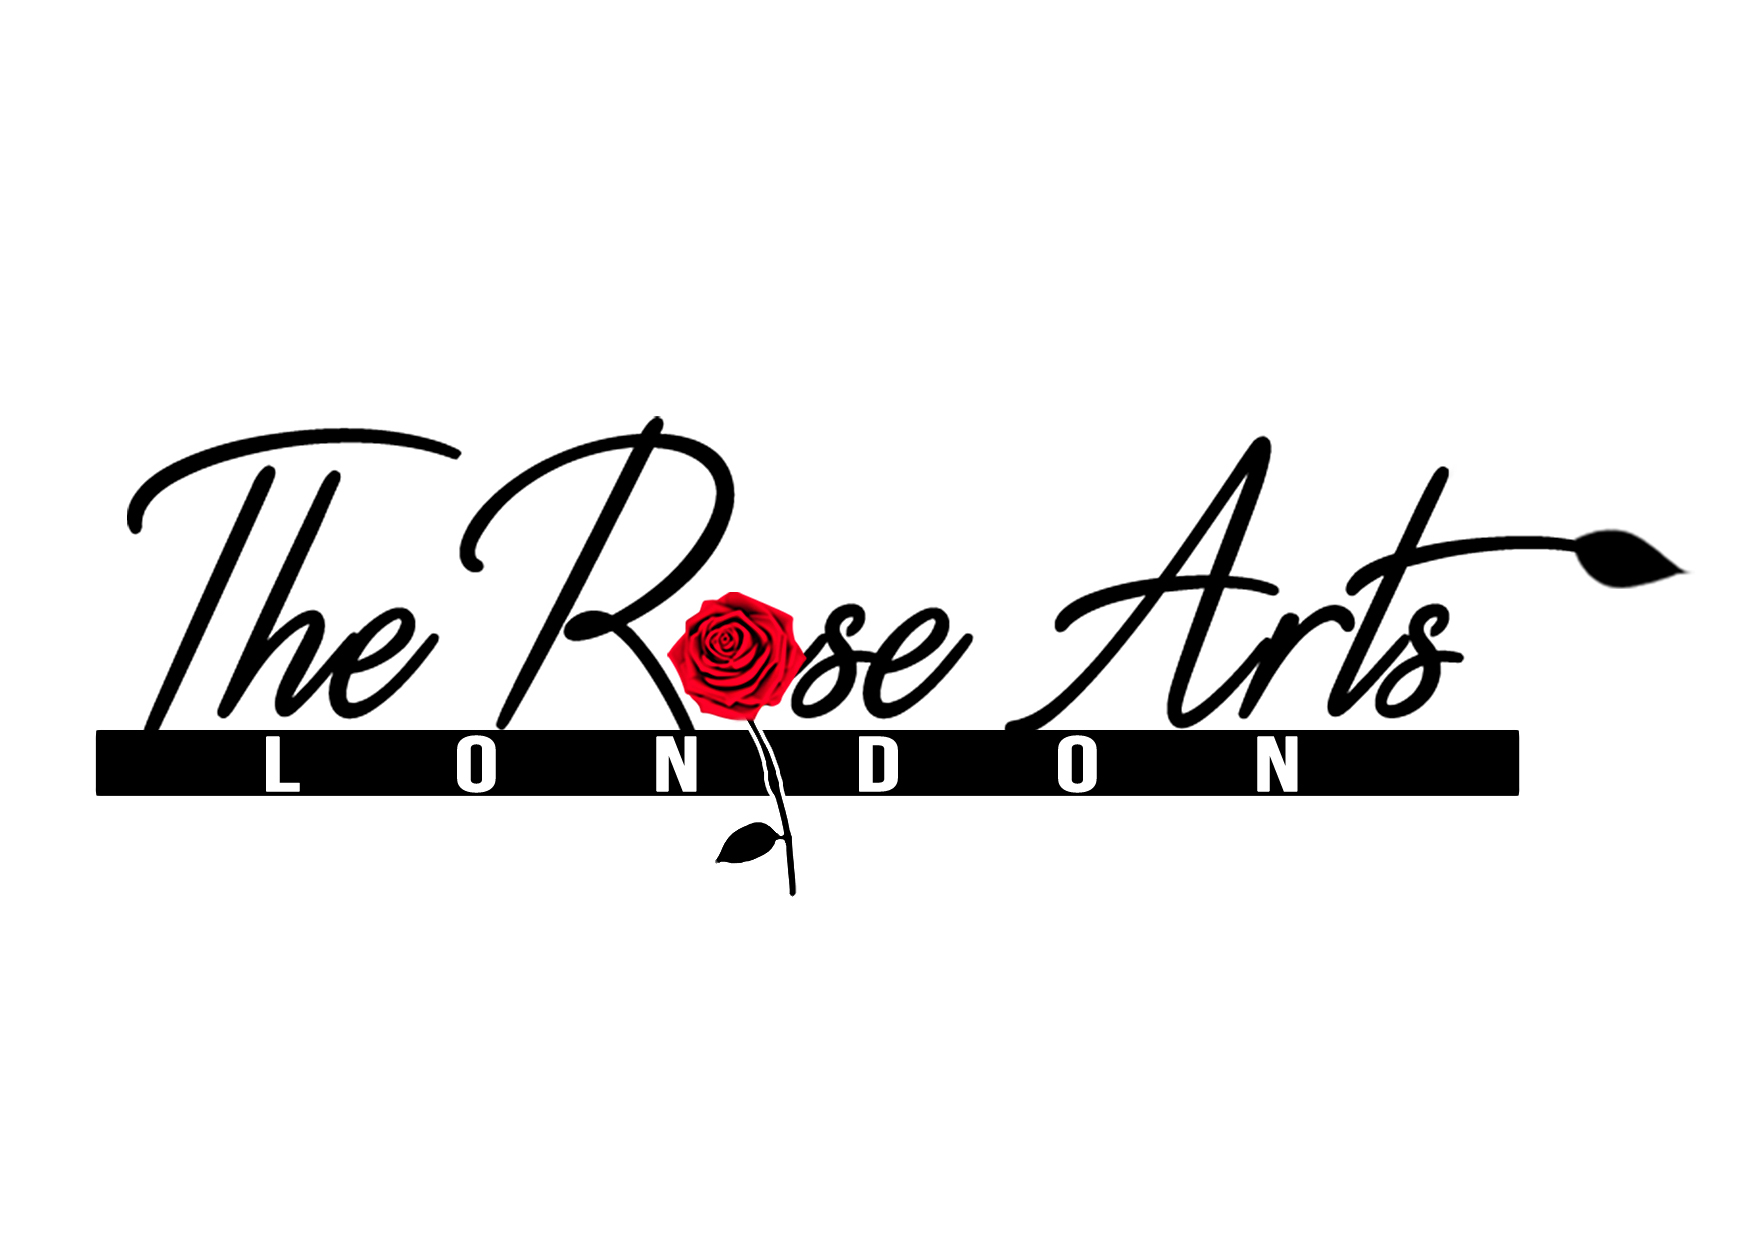 The Rose Arts London